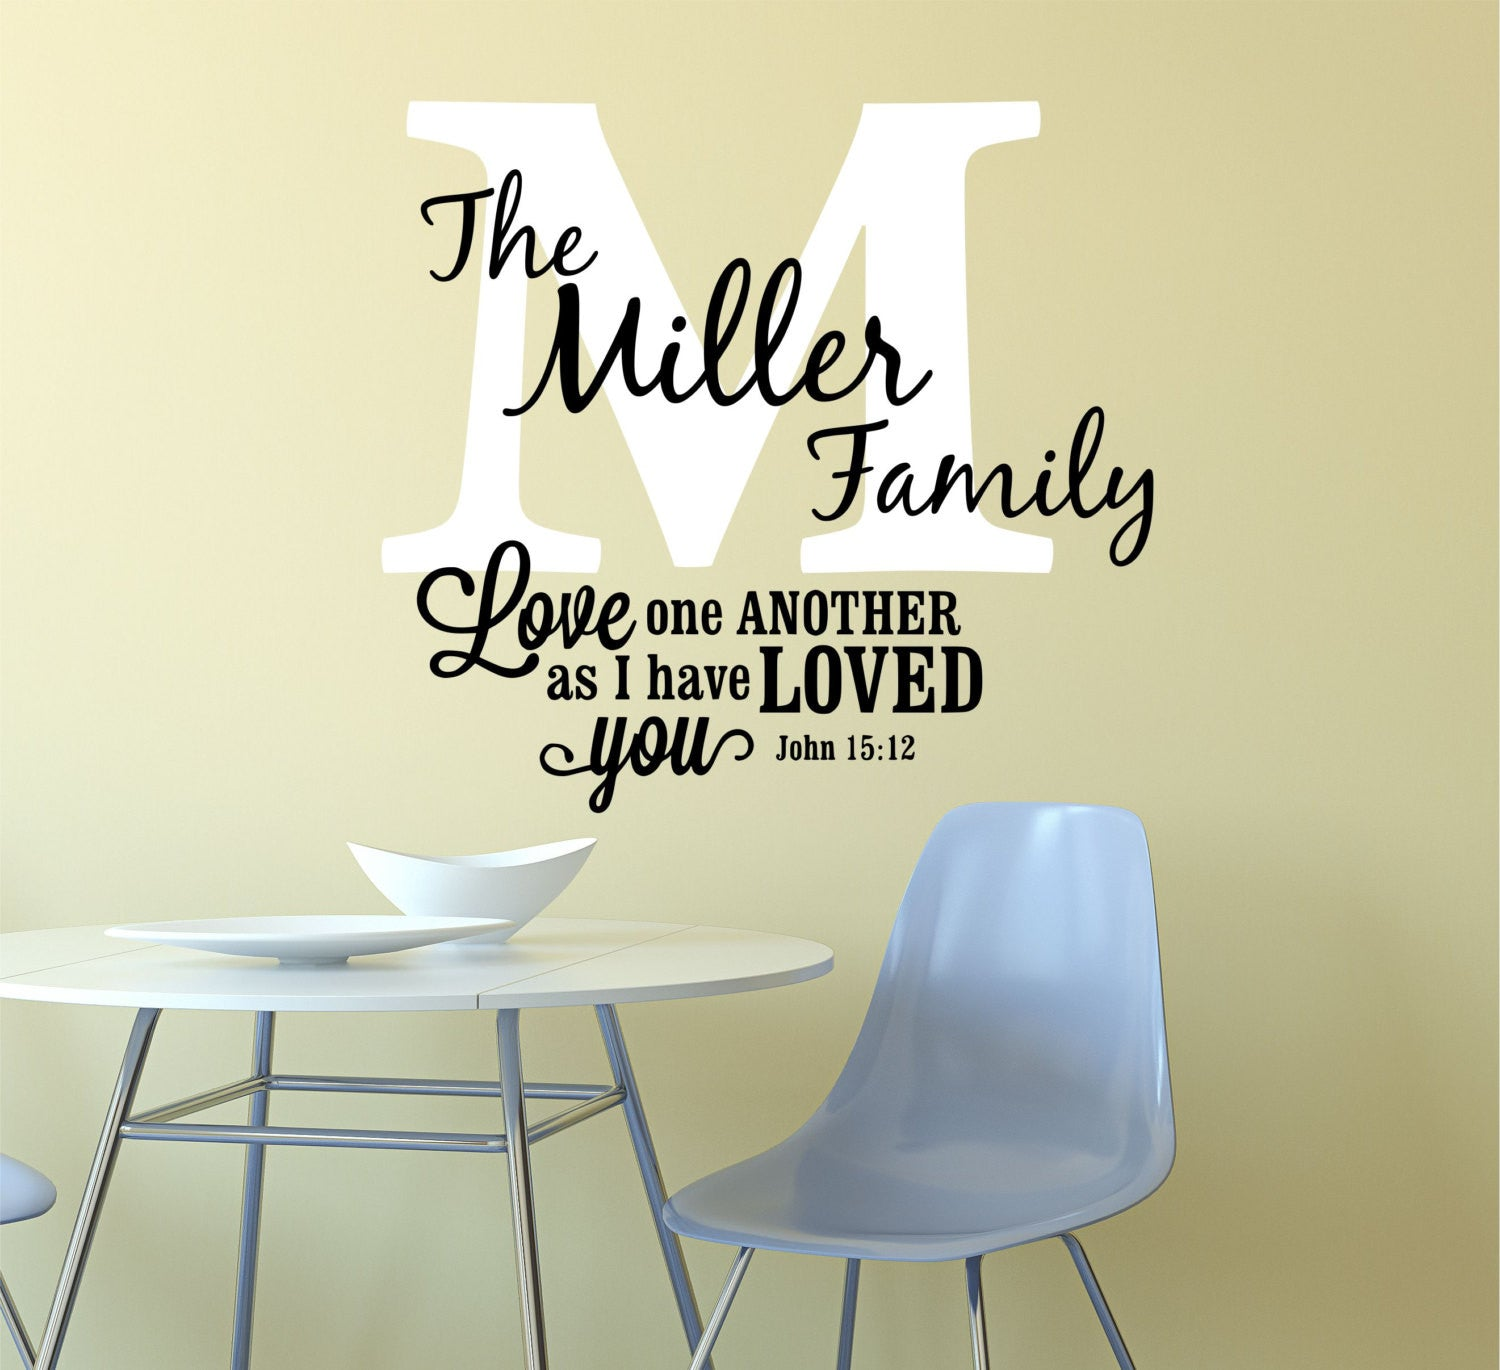 Wall Decals Quotes   By Decor Designs Decals, Christian Decal, Sticker, Christian  Wall